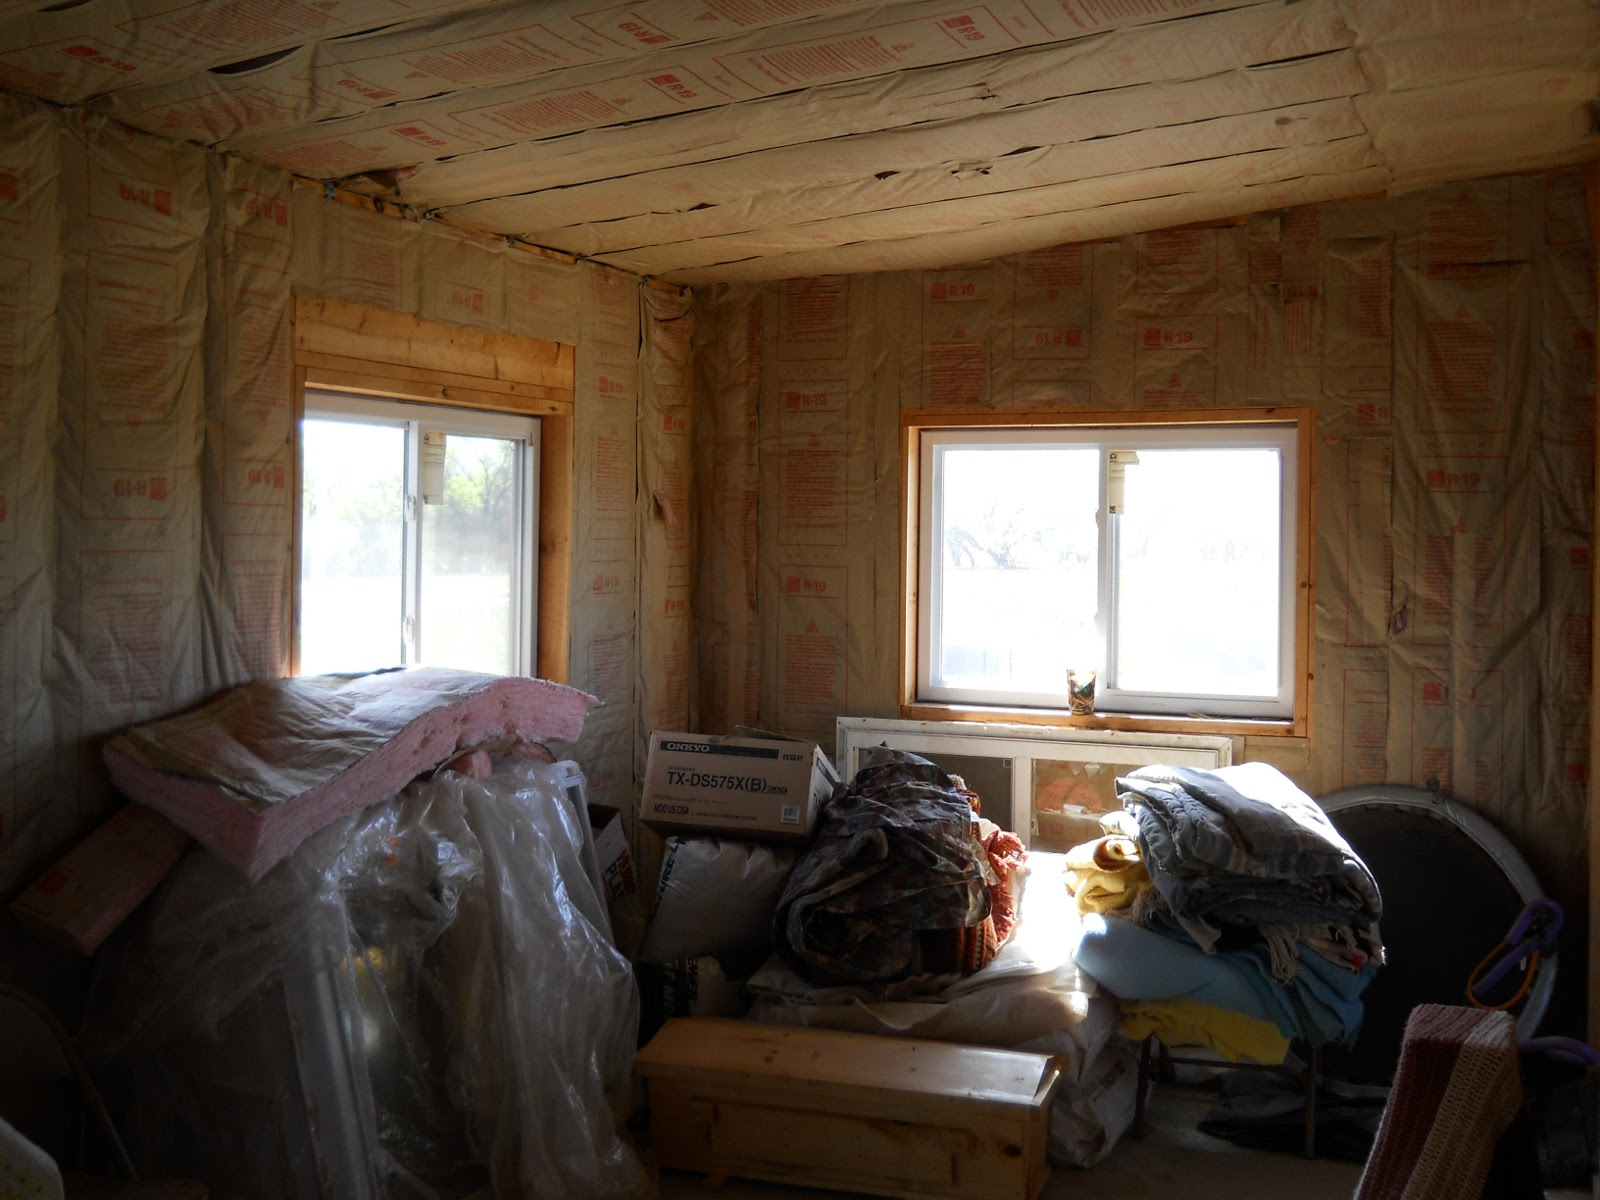 Summer Kitchen - Update II - Insulation & Final Cross Wall | The ...